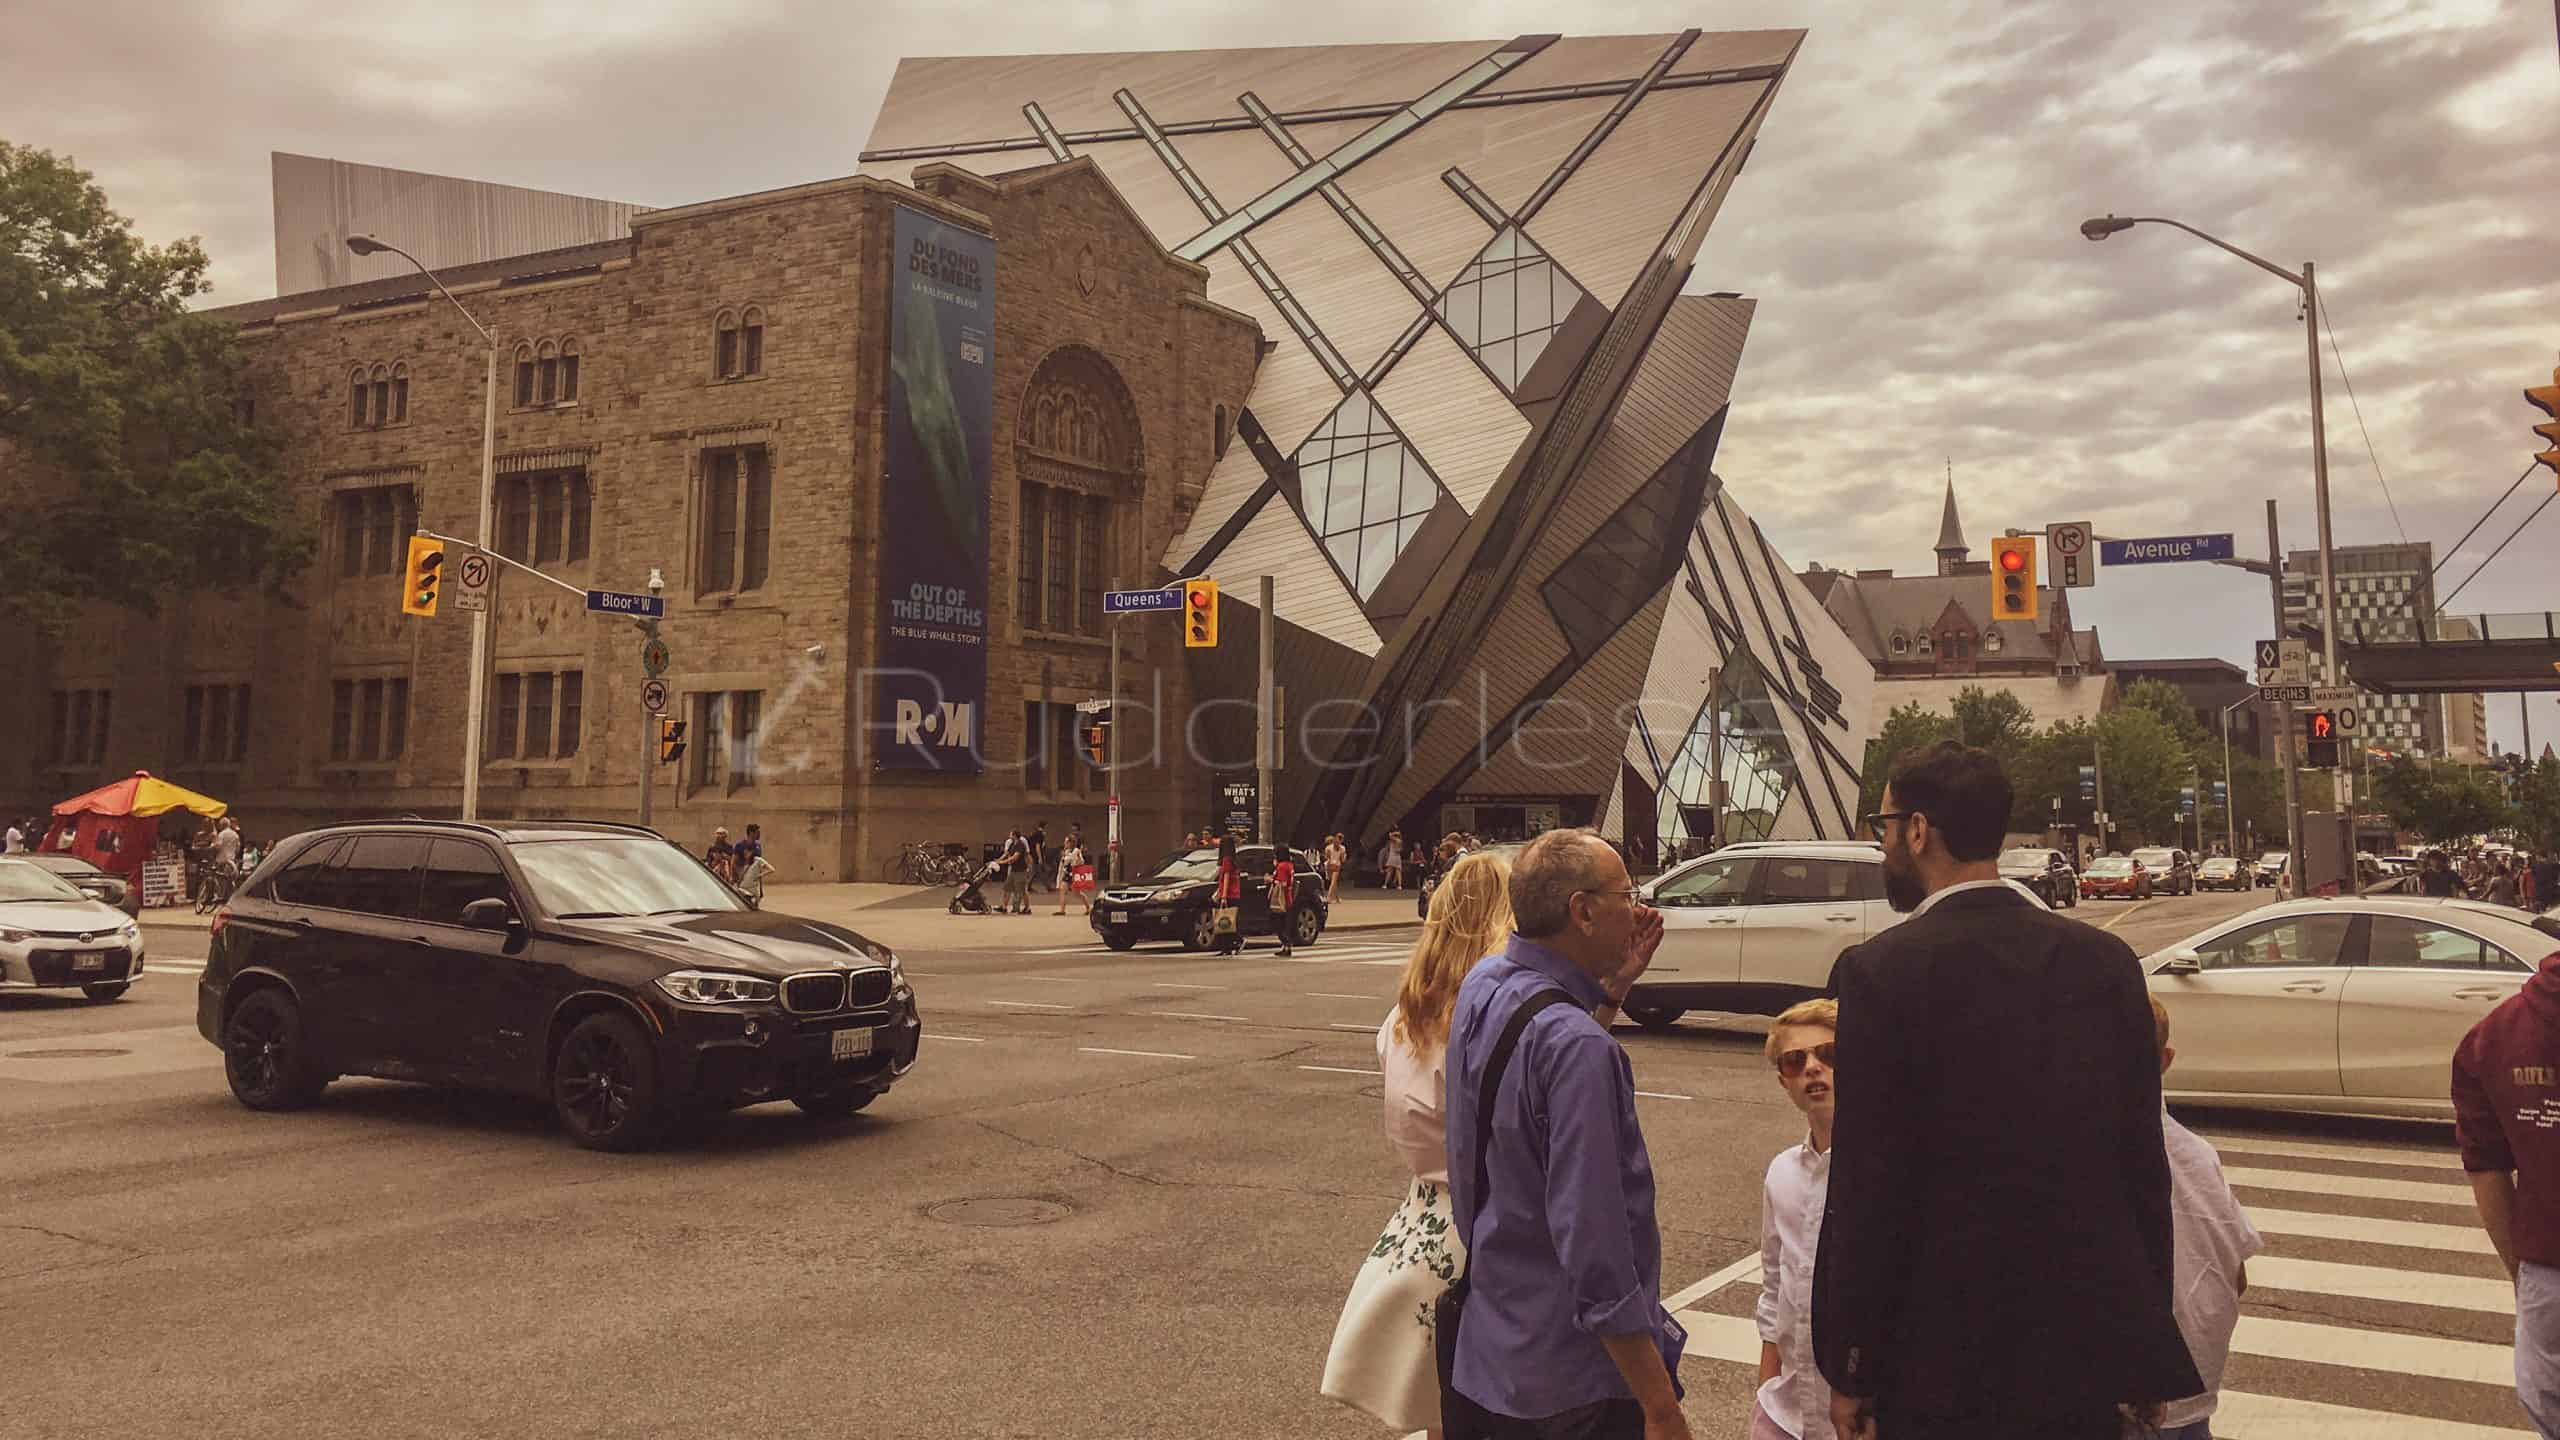 Royal ontario museum what to see in downtown toronto